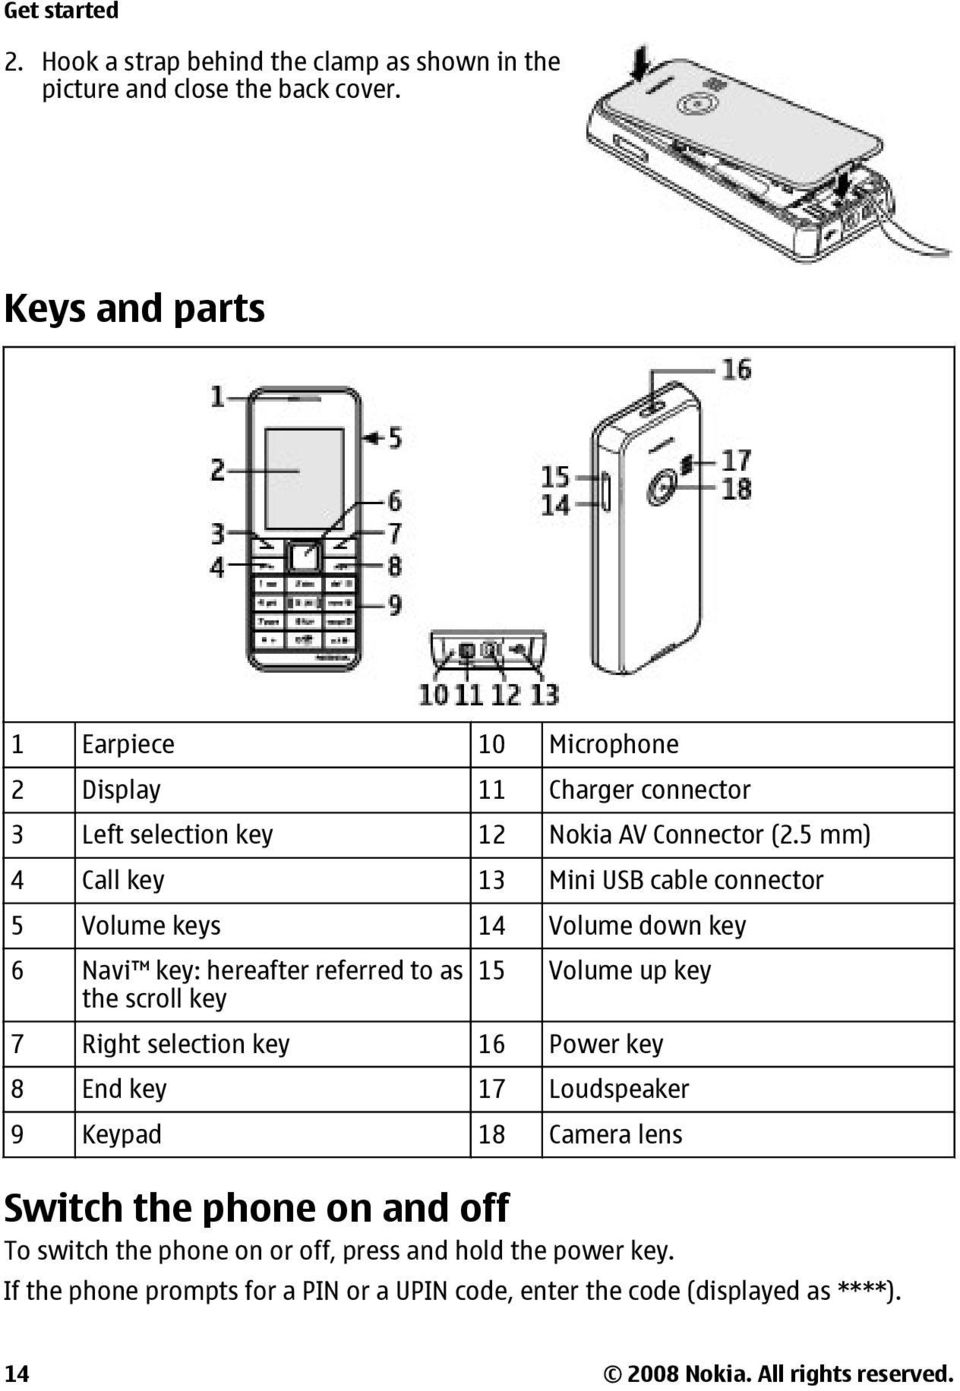 5 mm) 4 Call key 13 Mini USB cable connector 5 Volume keys 14 Volume down key 6 Navi key: hereafter referred to as the scroll key 15 Volume up key 7 Right